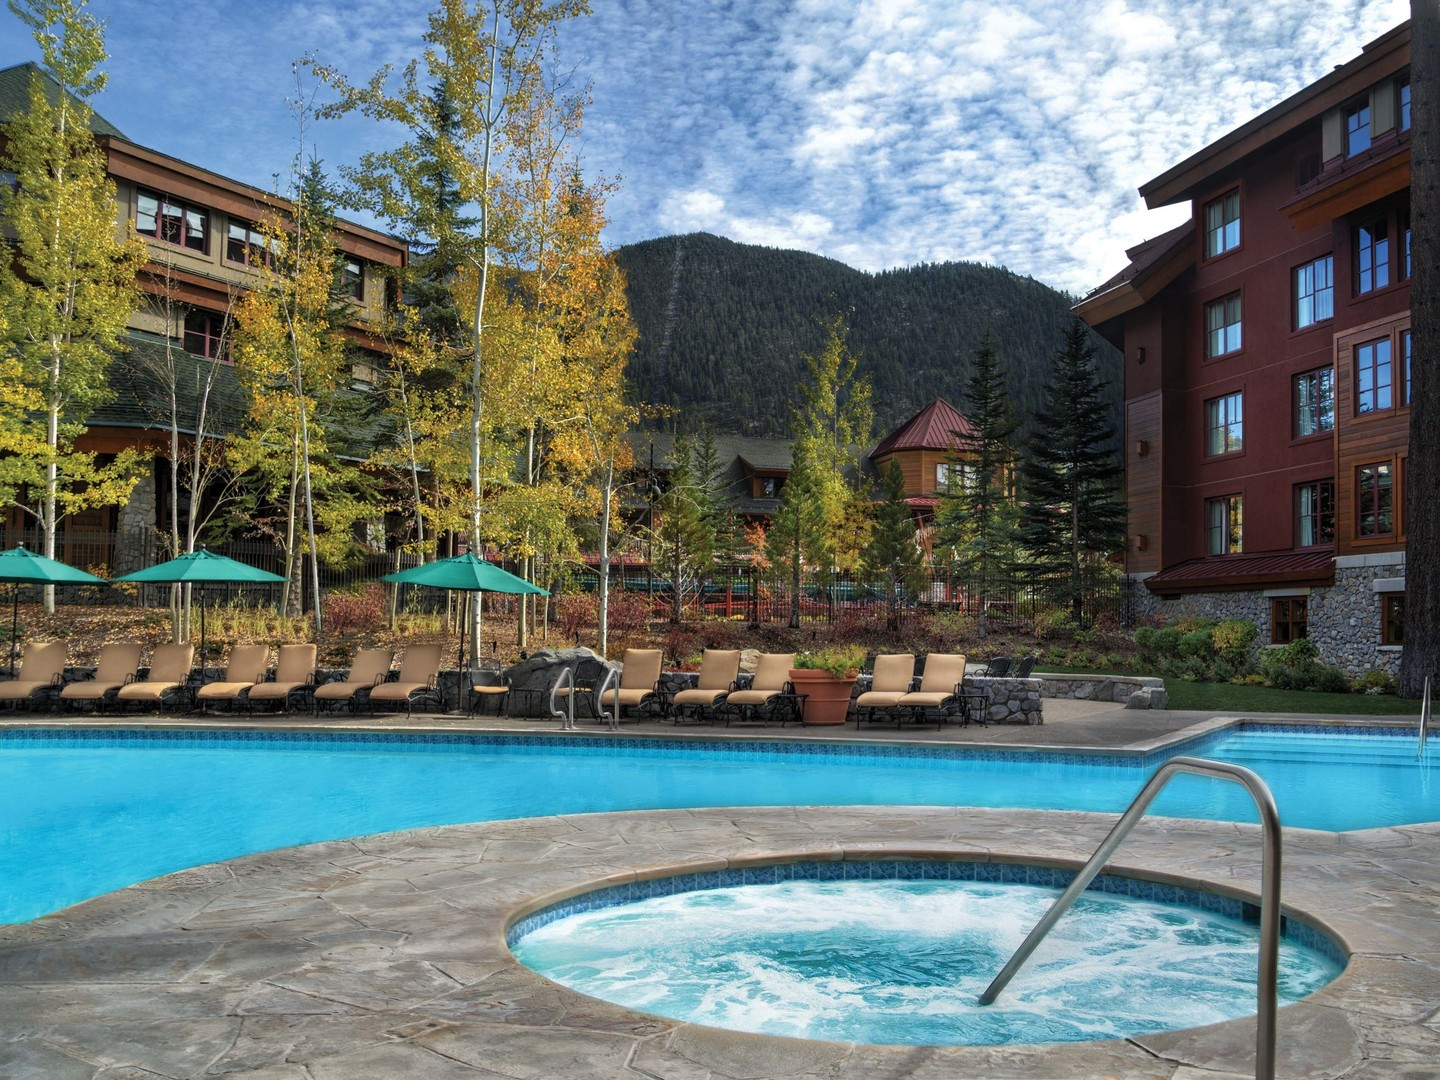 Marriott's Grand Residence Club<span class='trademark'>®</span> 1, Lake Tahoe Whirlpool. Marriott's Grand Residence Club<span class='trademark'>®</span> 1, Lake Tahoe is located in South Lake Tahoe, California United States.